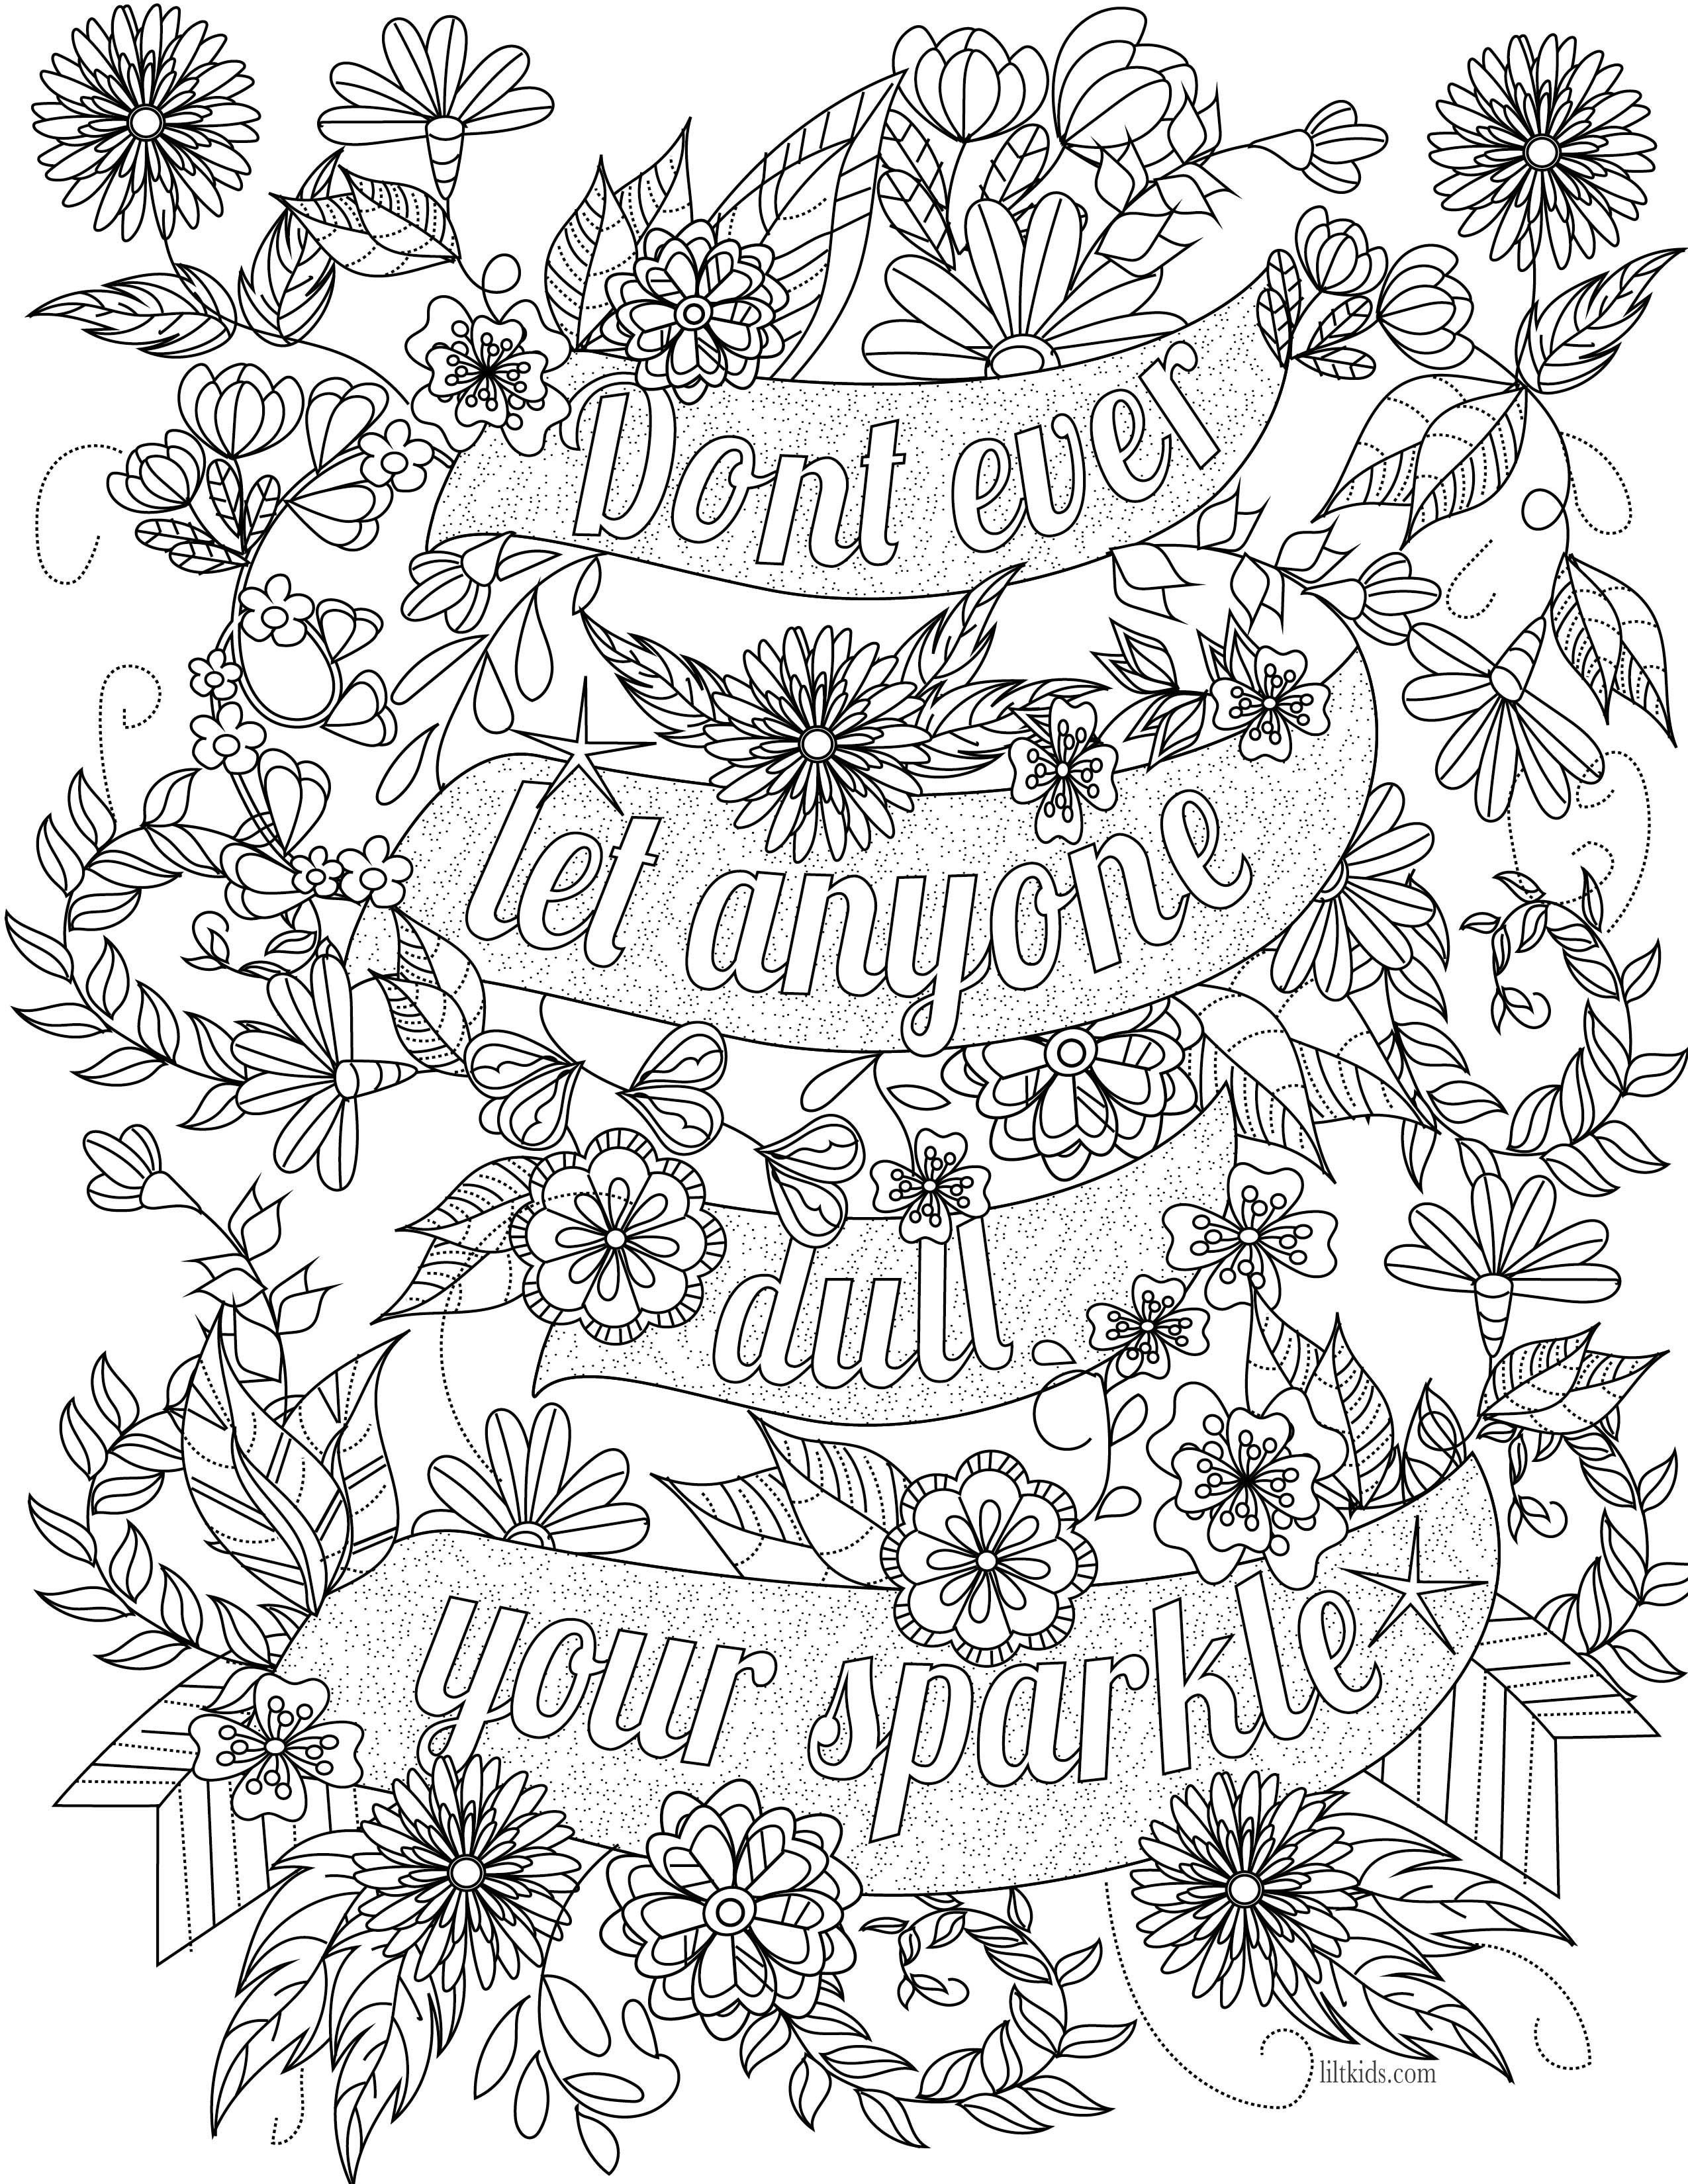 Free Adult Coloring Apps Printables Pinterest Adult Coloring